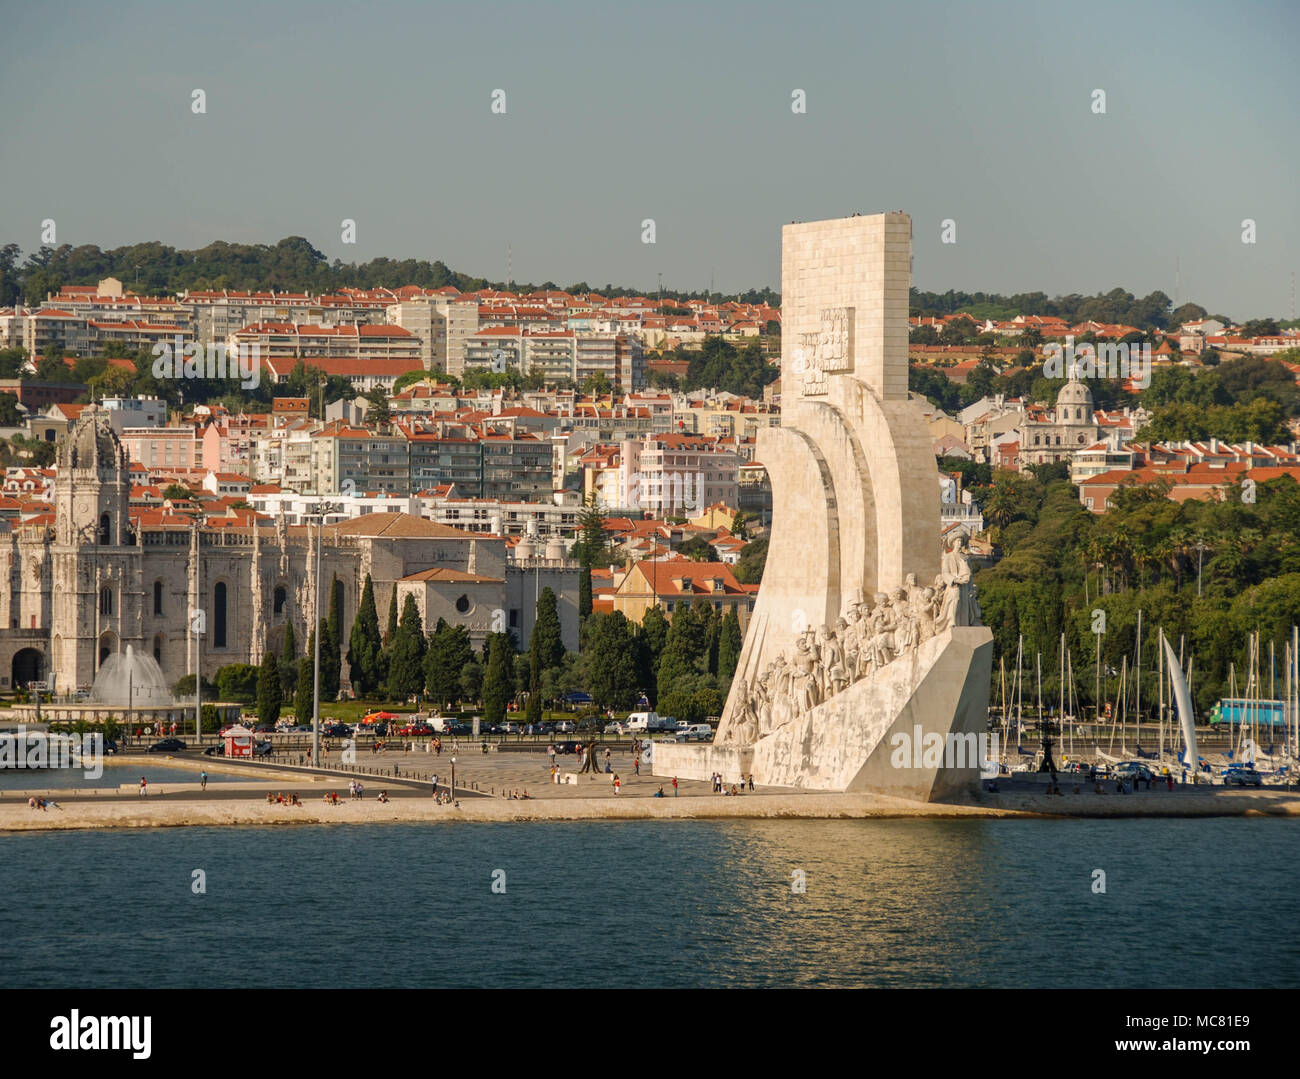 The monument Padrao dos Descobrimentos on the banks of the Tagus River Stock Photo